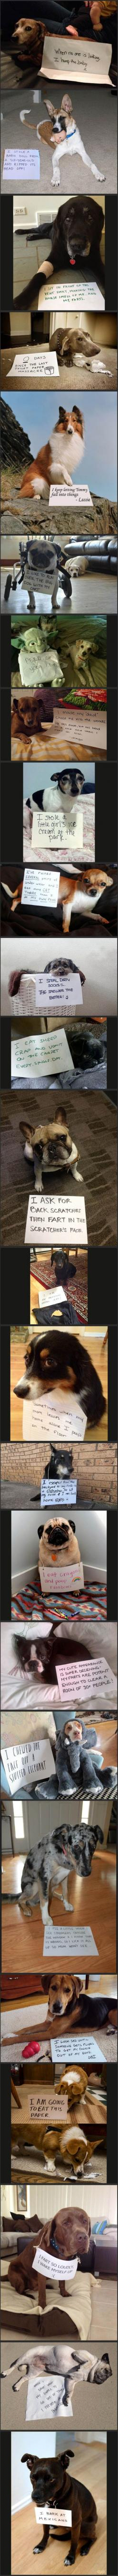 The very last one is HILARIOUS!: Funny Animals, Dog Shame, Dog Shaming, Animal Shame, Bad Dog, Funny Dogs Hilarious, So Funny, Dog Confession